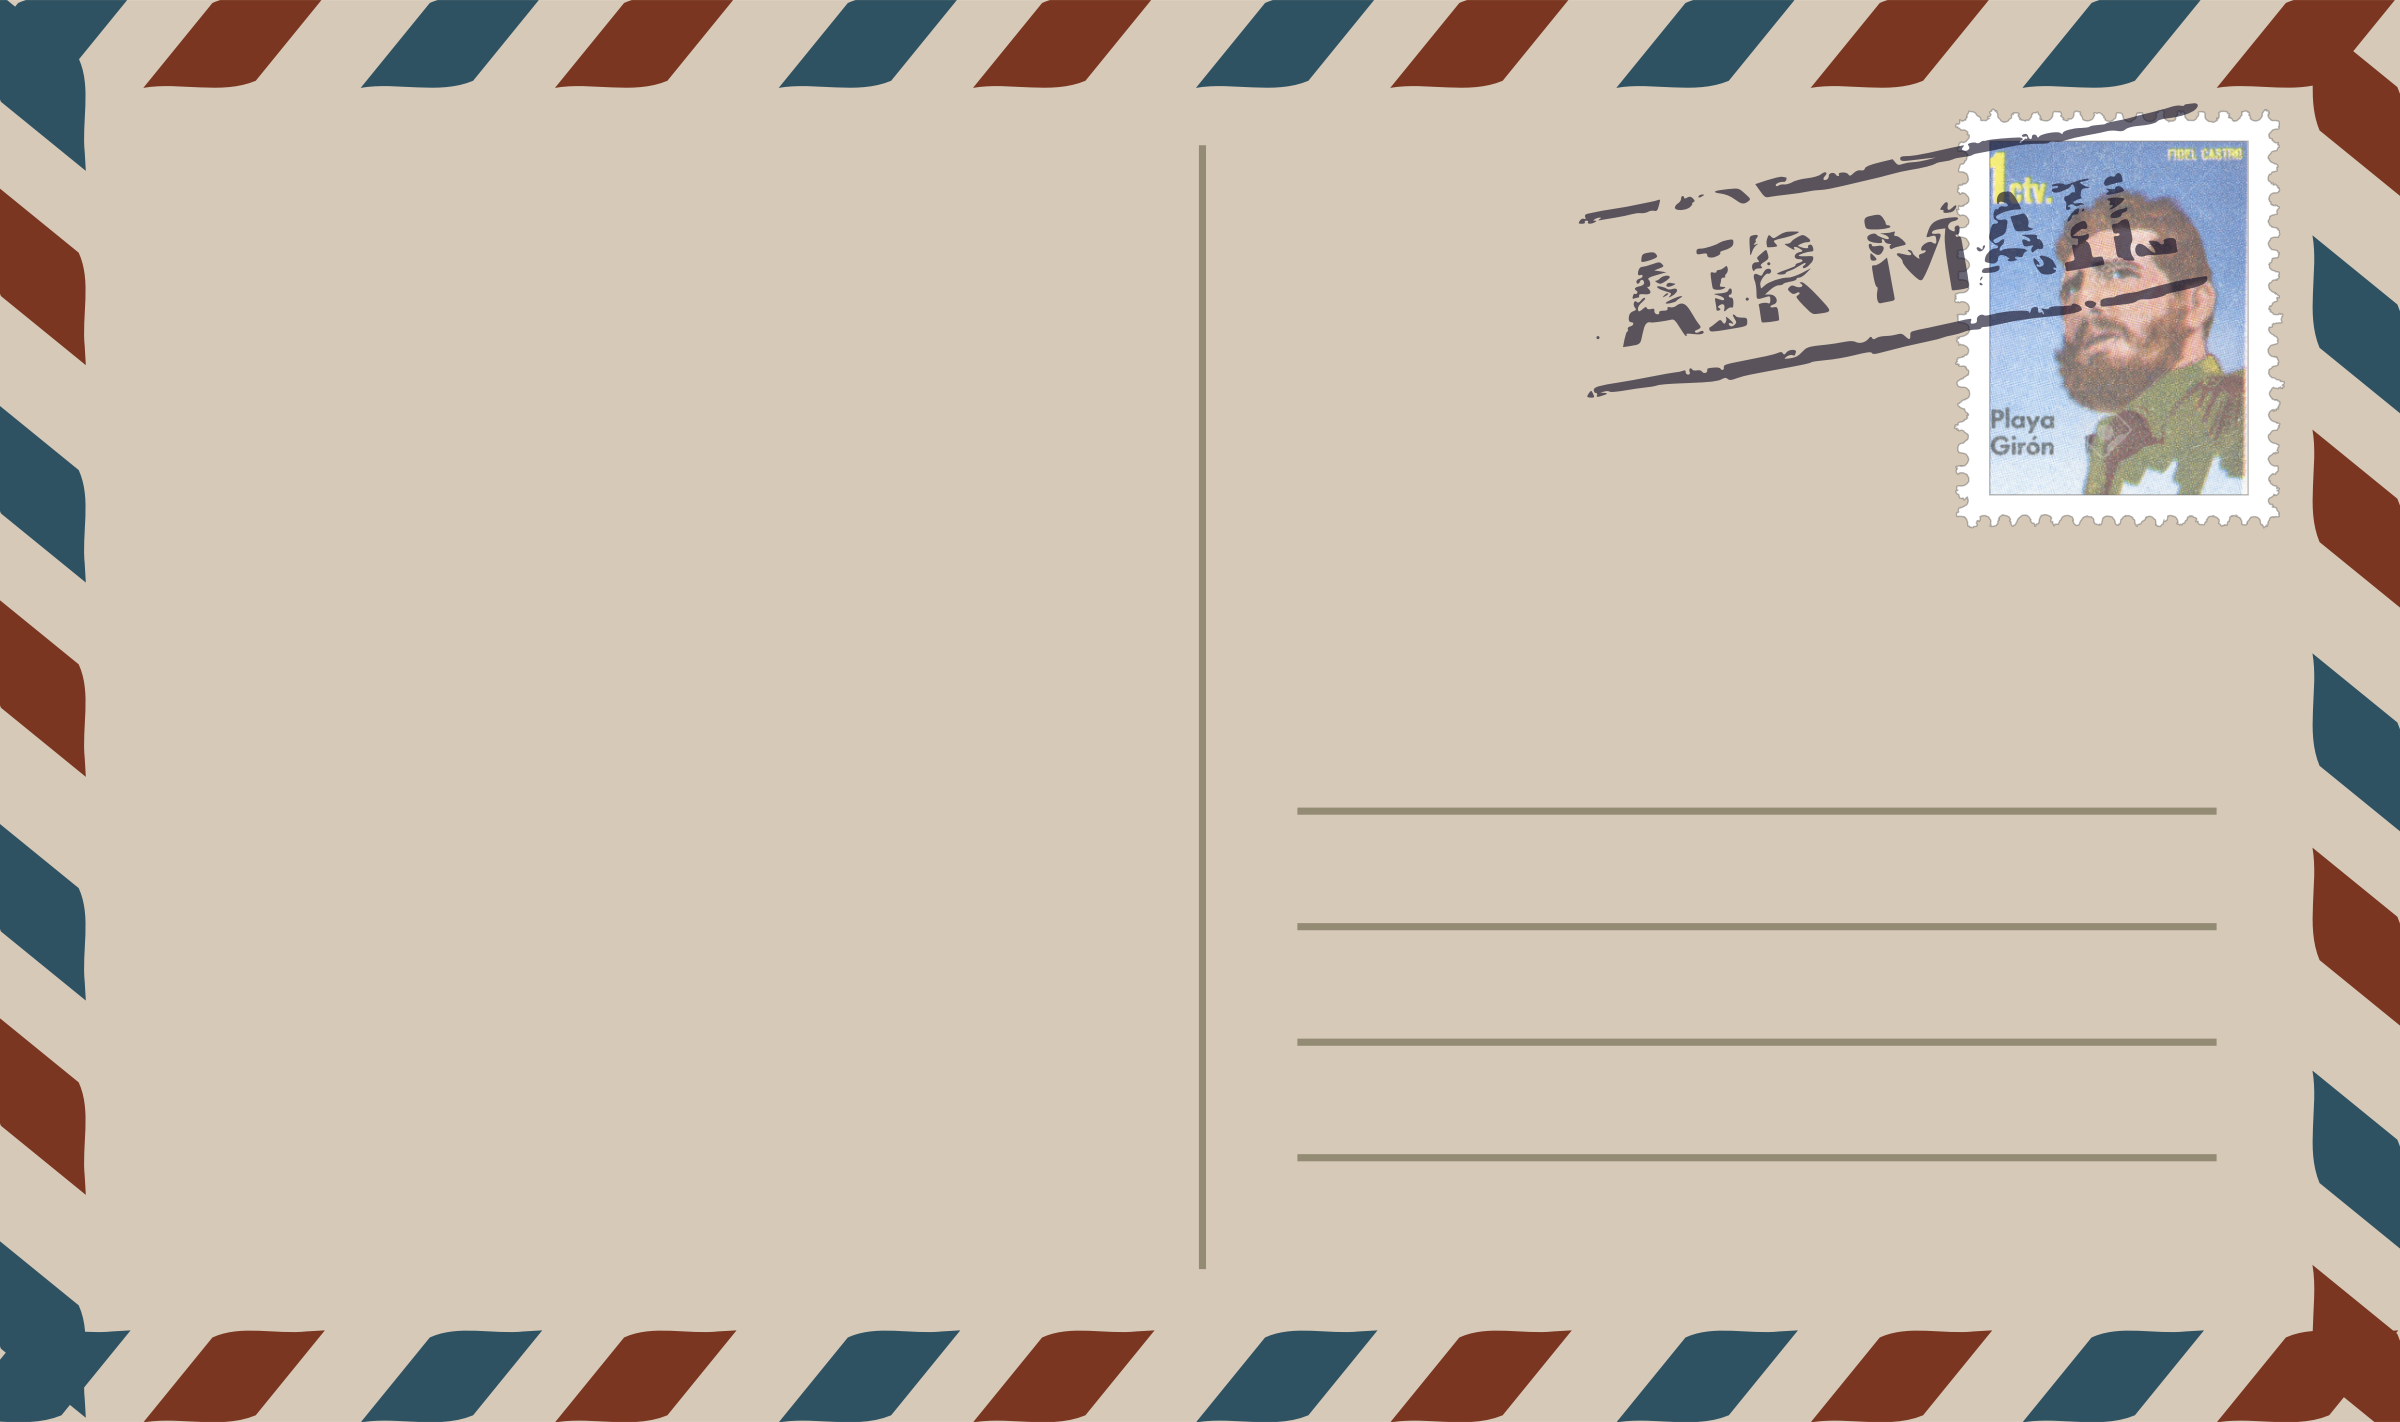 postcard airmail with stamp by Klàro